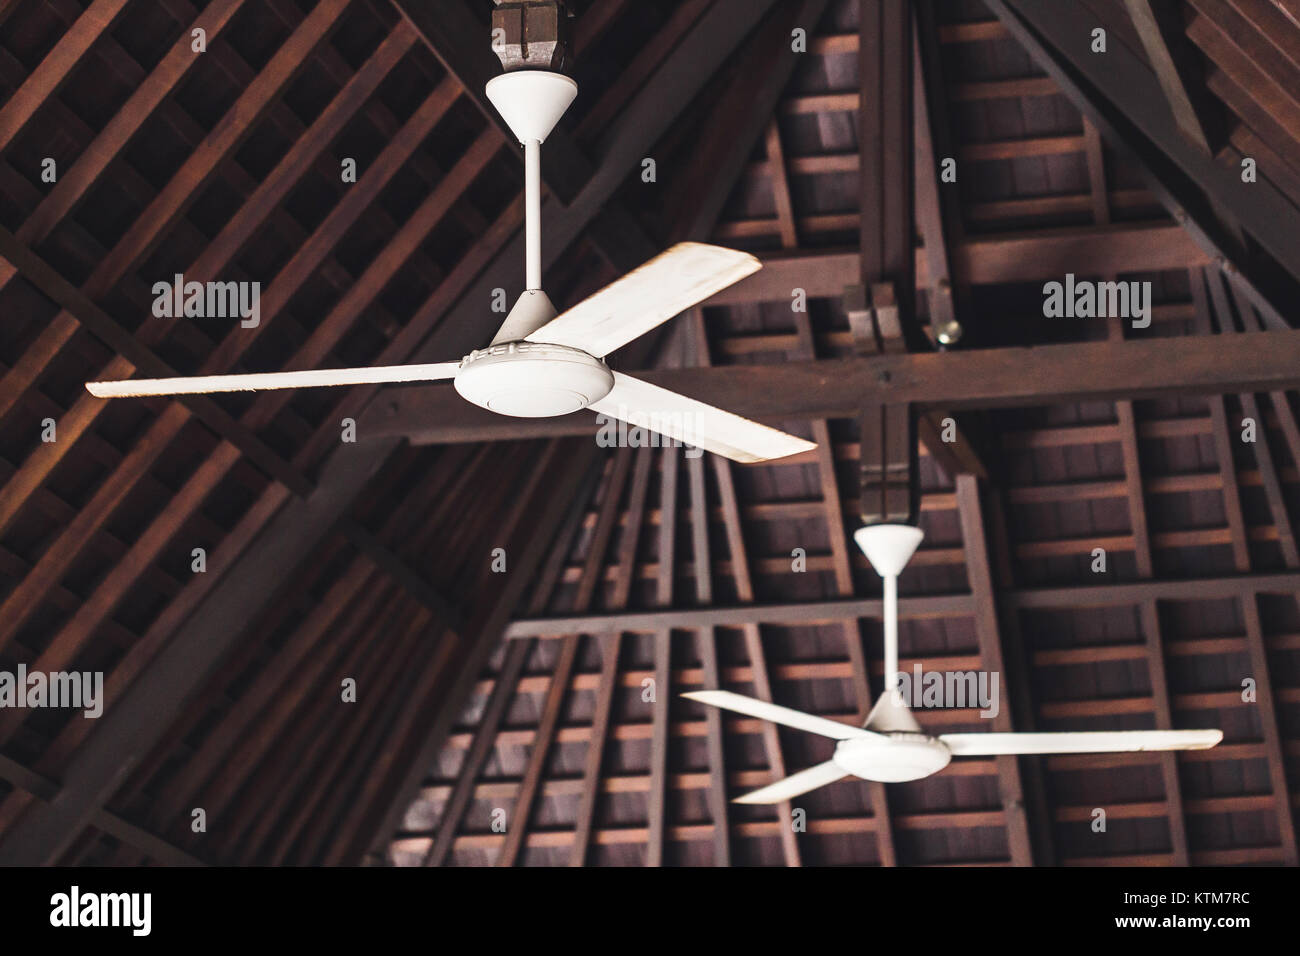 Old ceiling fan hanging under wooden roof asian style stock photo old ceiling fan hanging under wooden roof asian style aloadofball Image collections